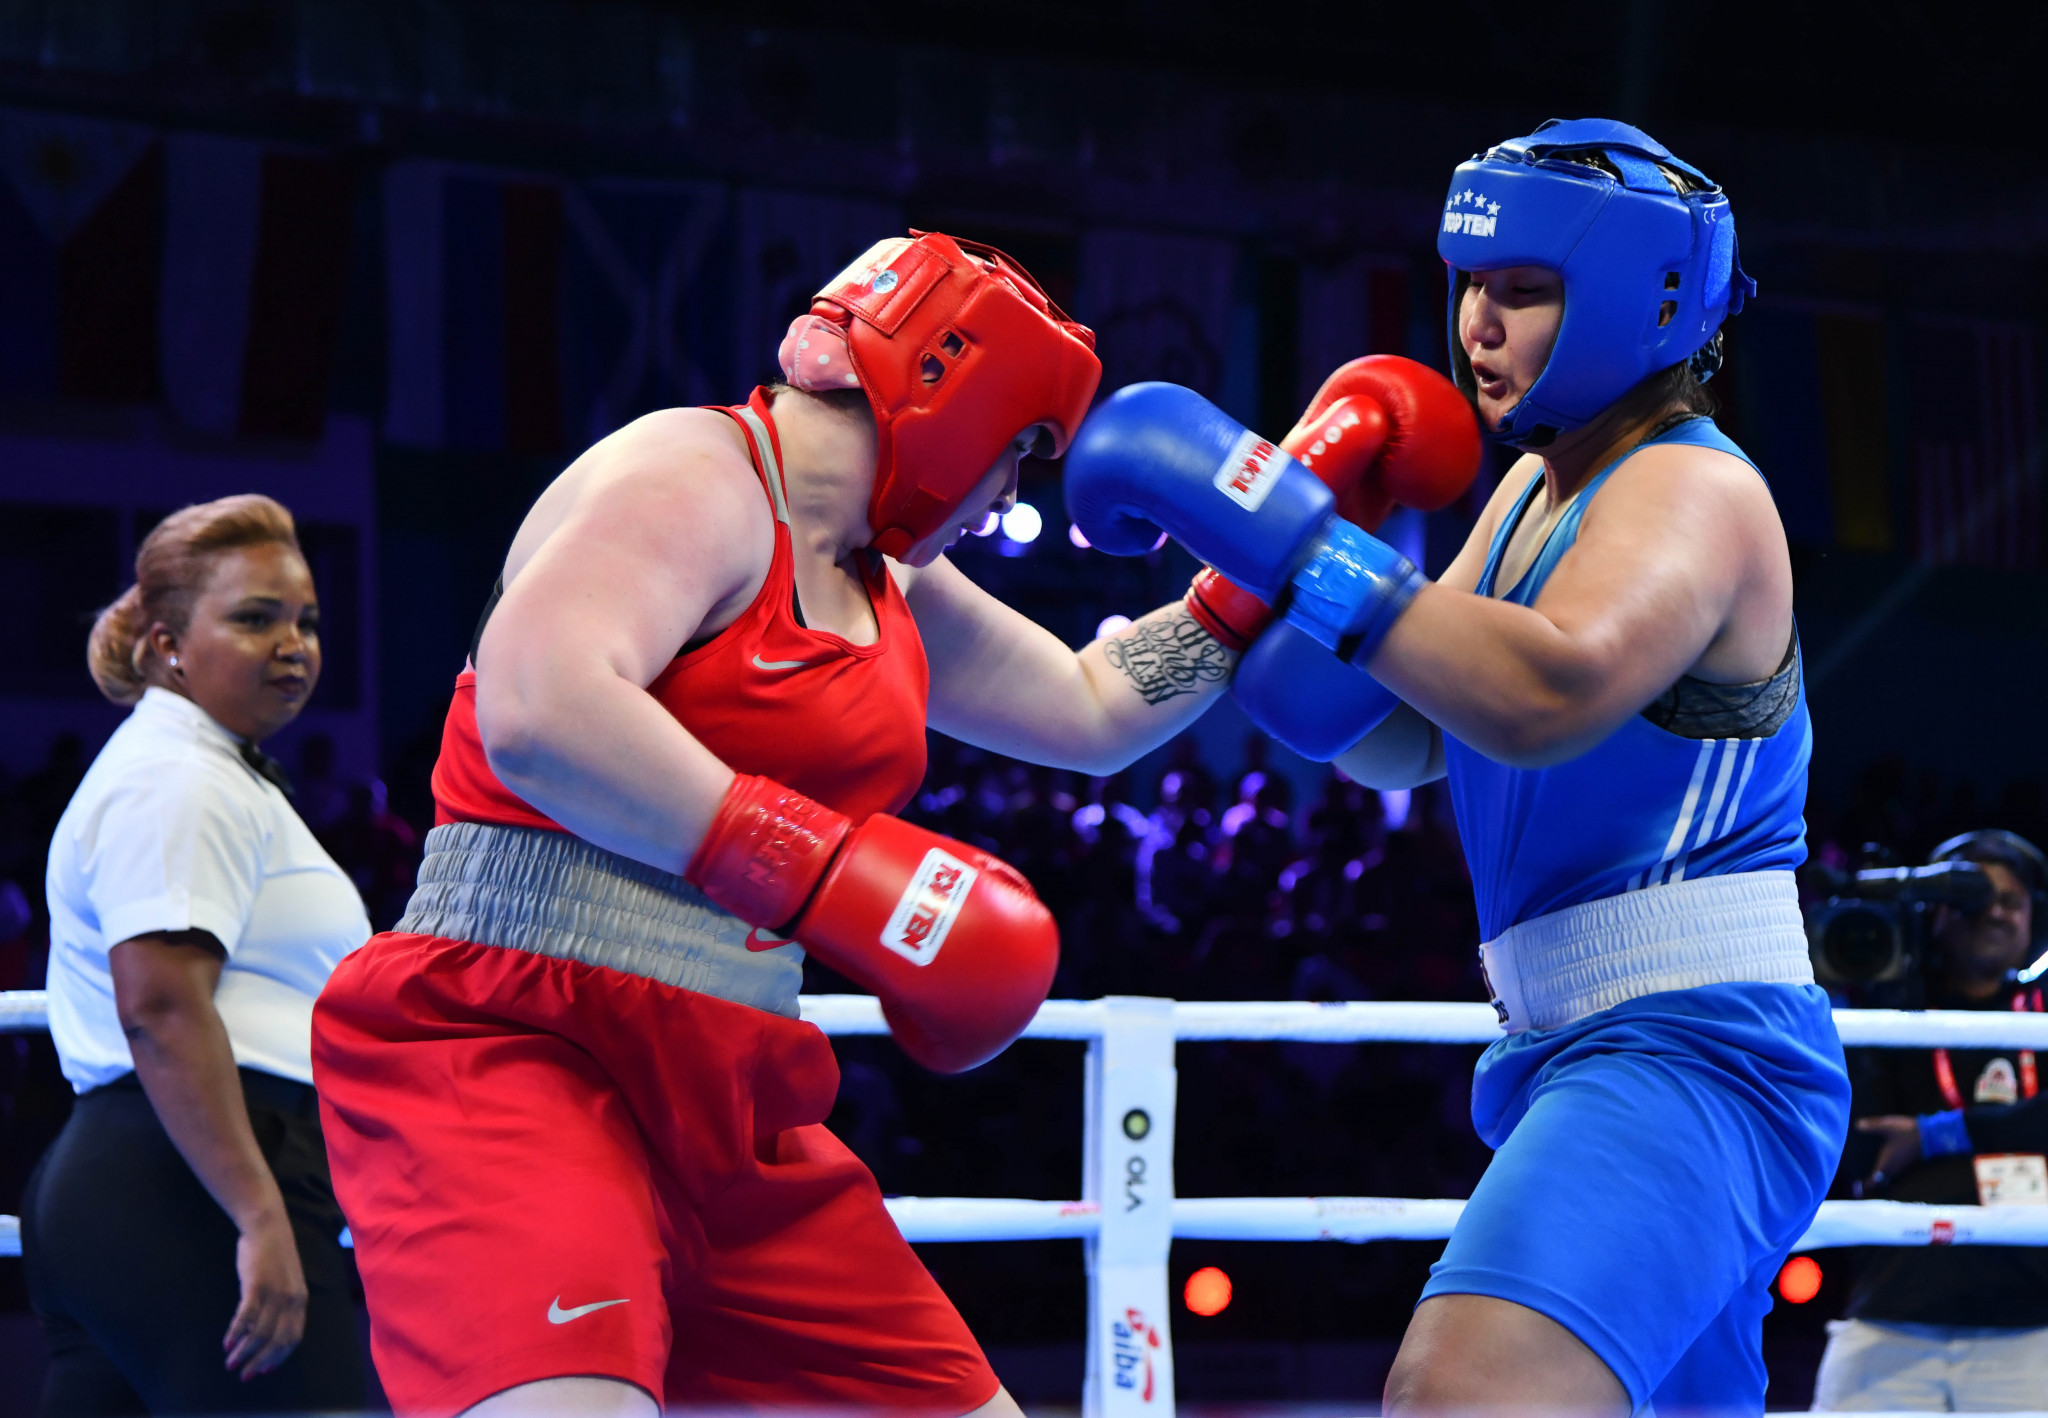 AIBA is focusing on improving opportunities for women in the sport by hosting its first ever Gender Equality Forum in Sofia ©Getty Images